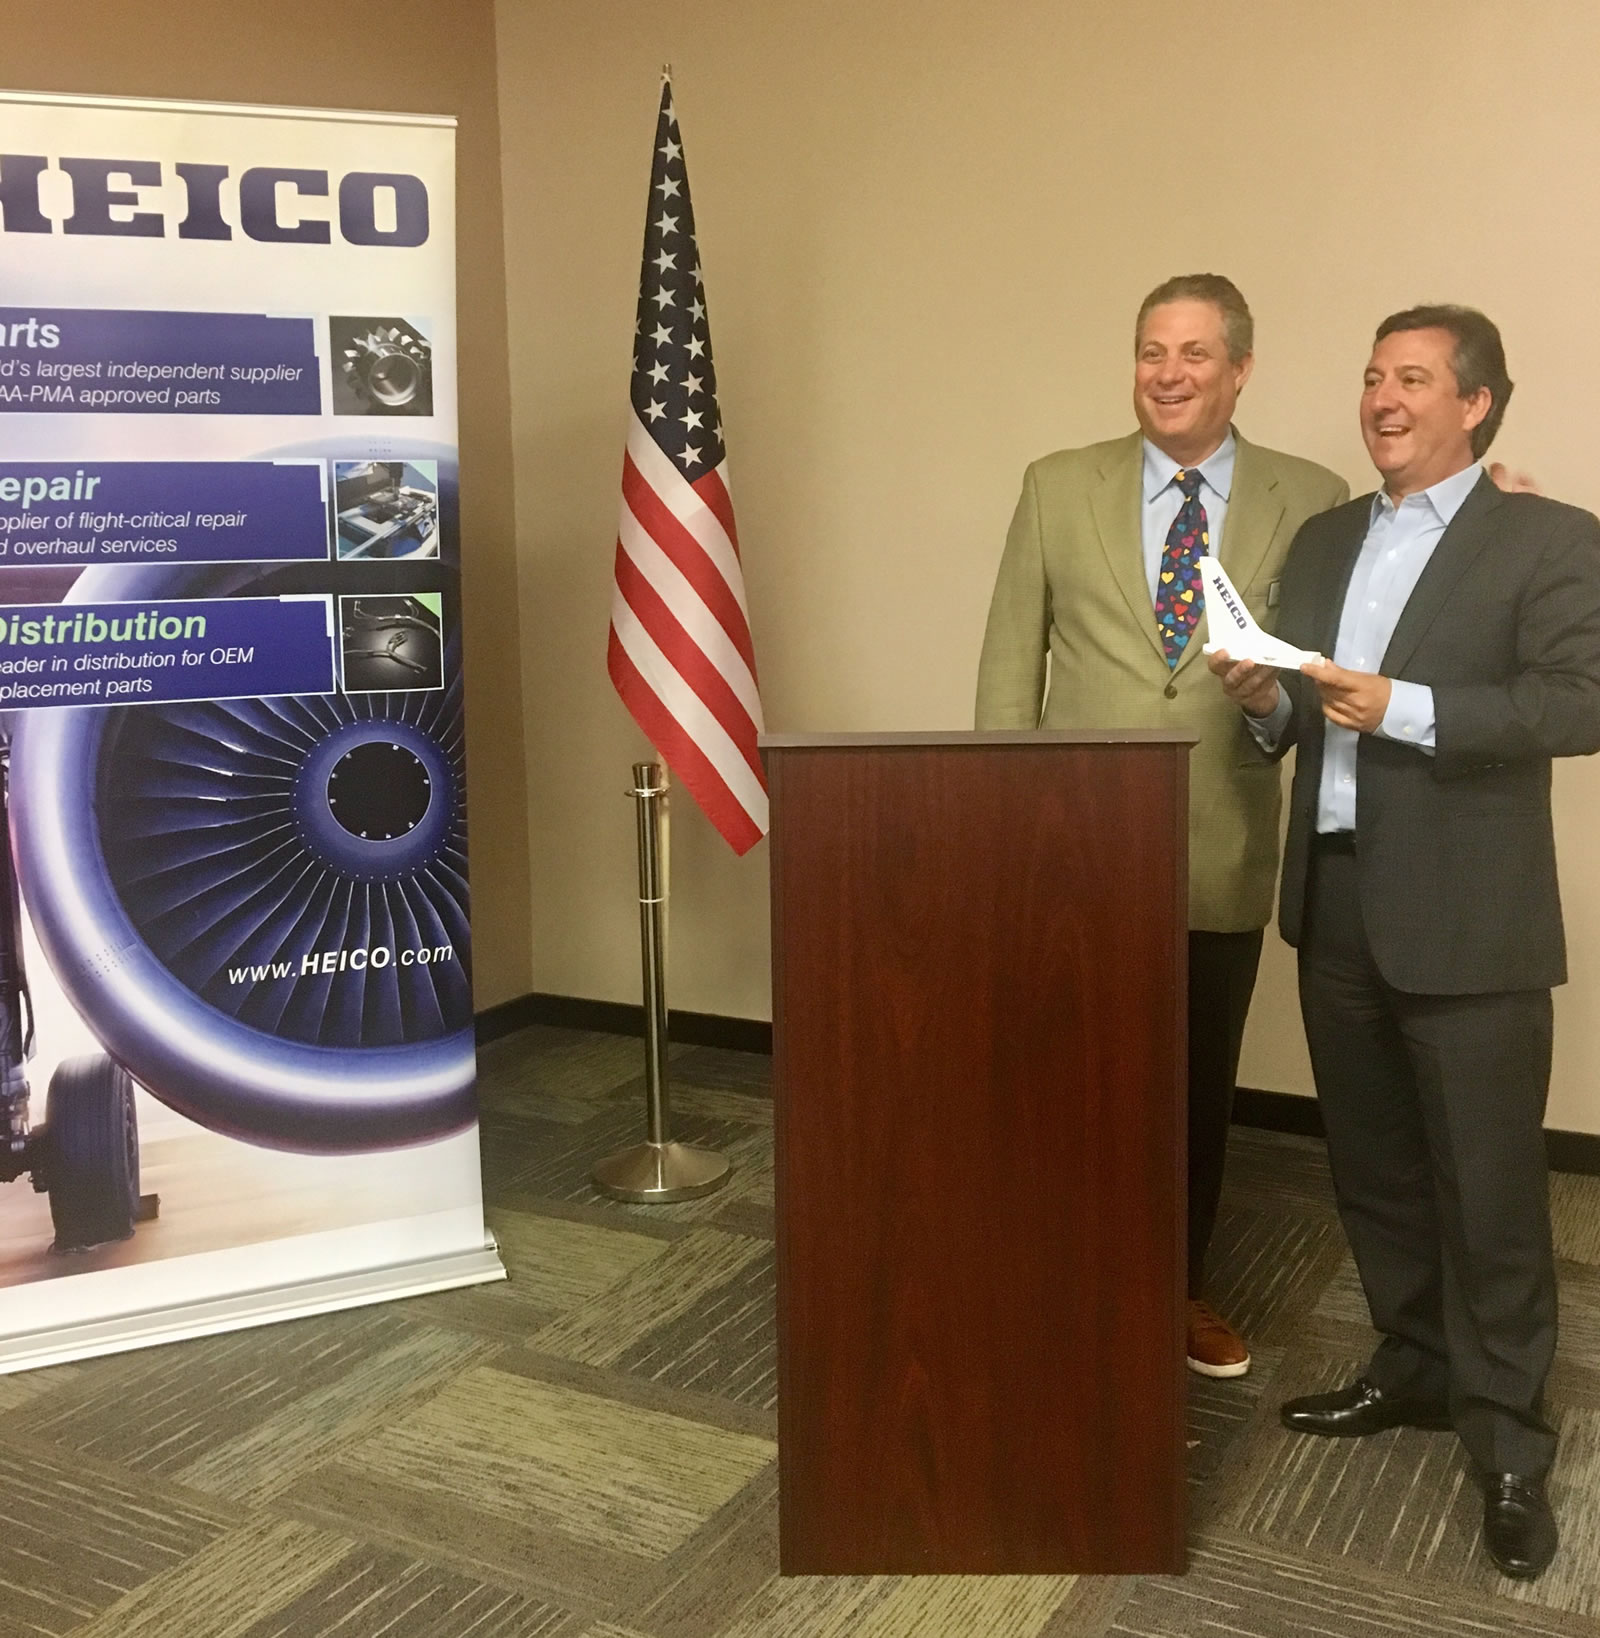 Thank you to our Sponsor HEICO. Pictured are Alex DeGunten (HEICO Business Development Officer) with GMAA President Aviv Tzur.